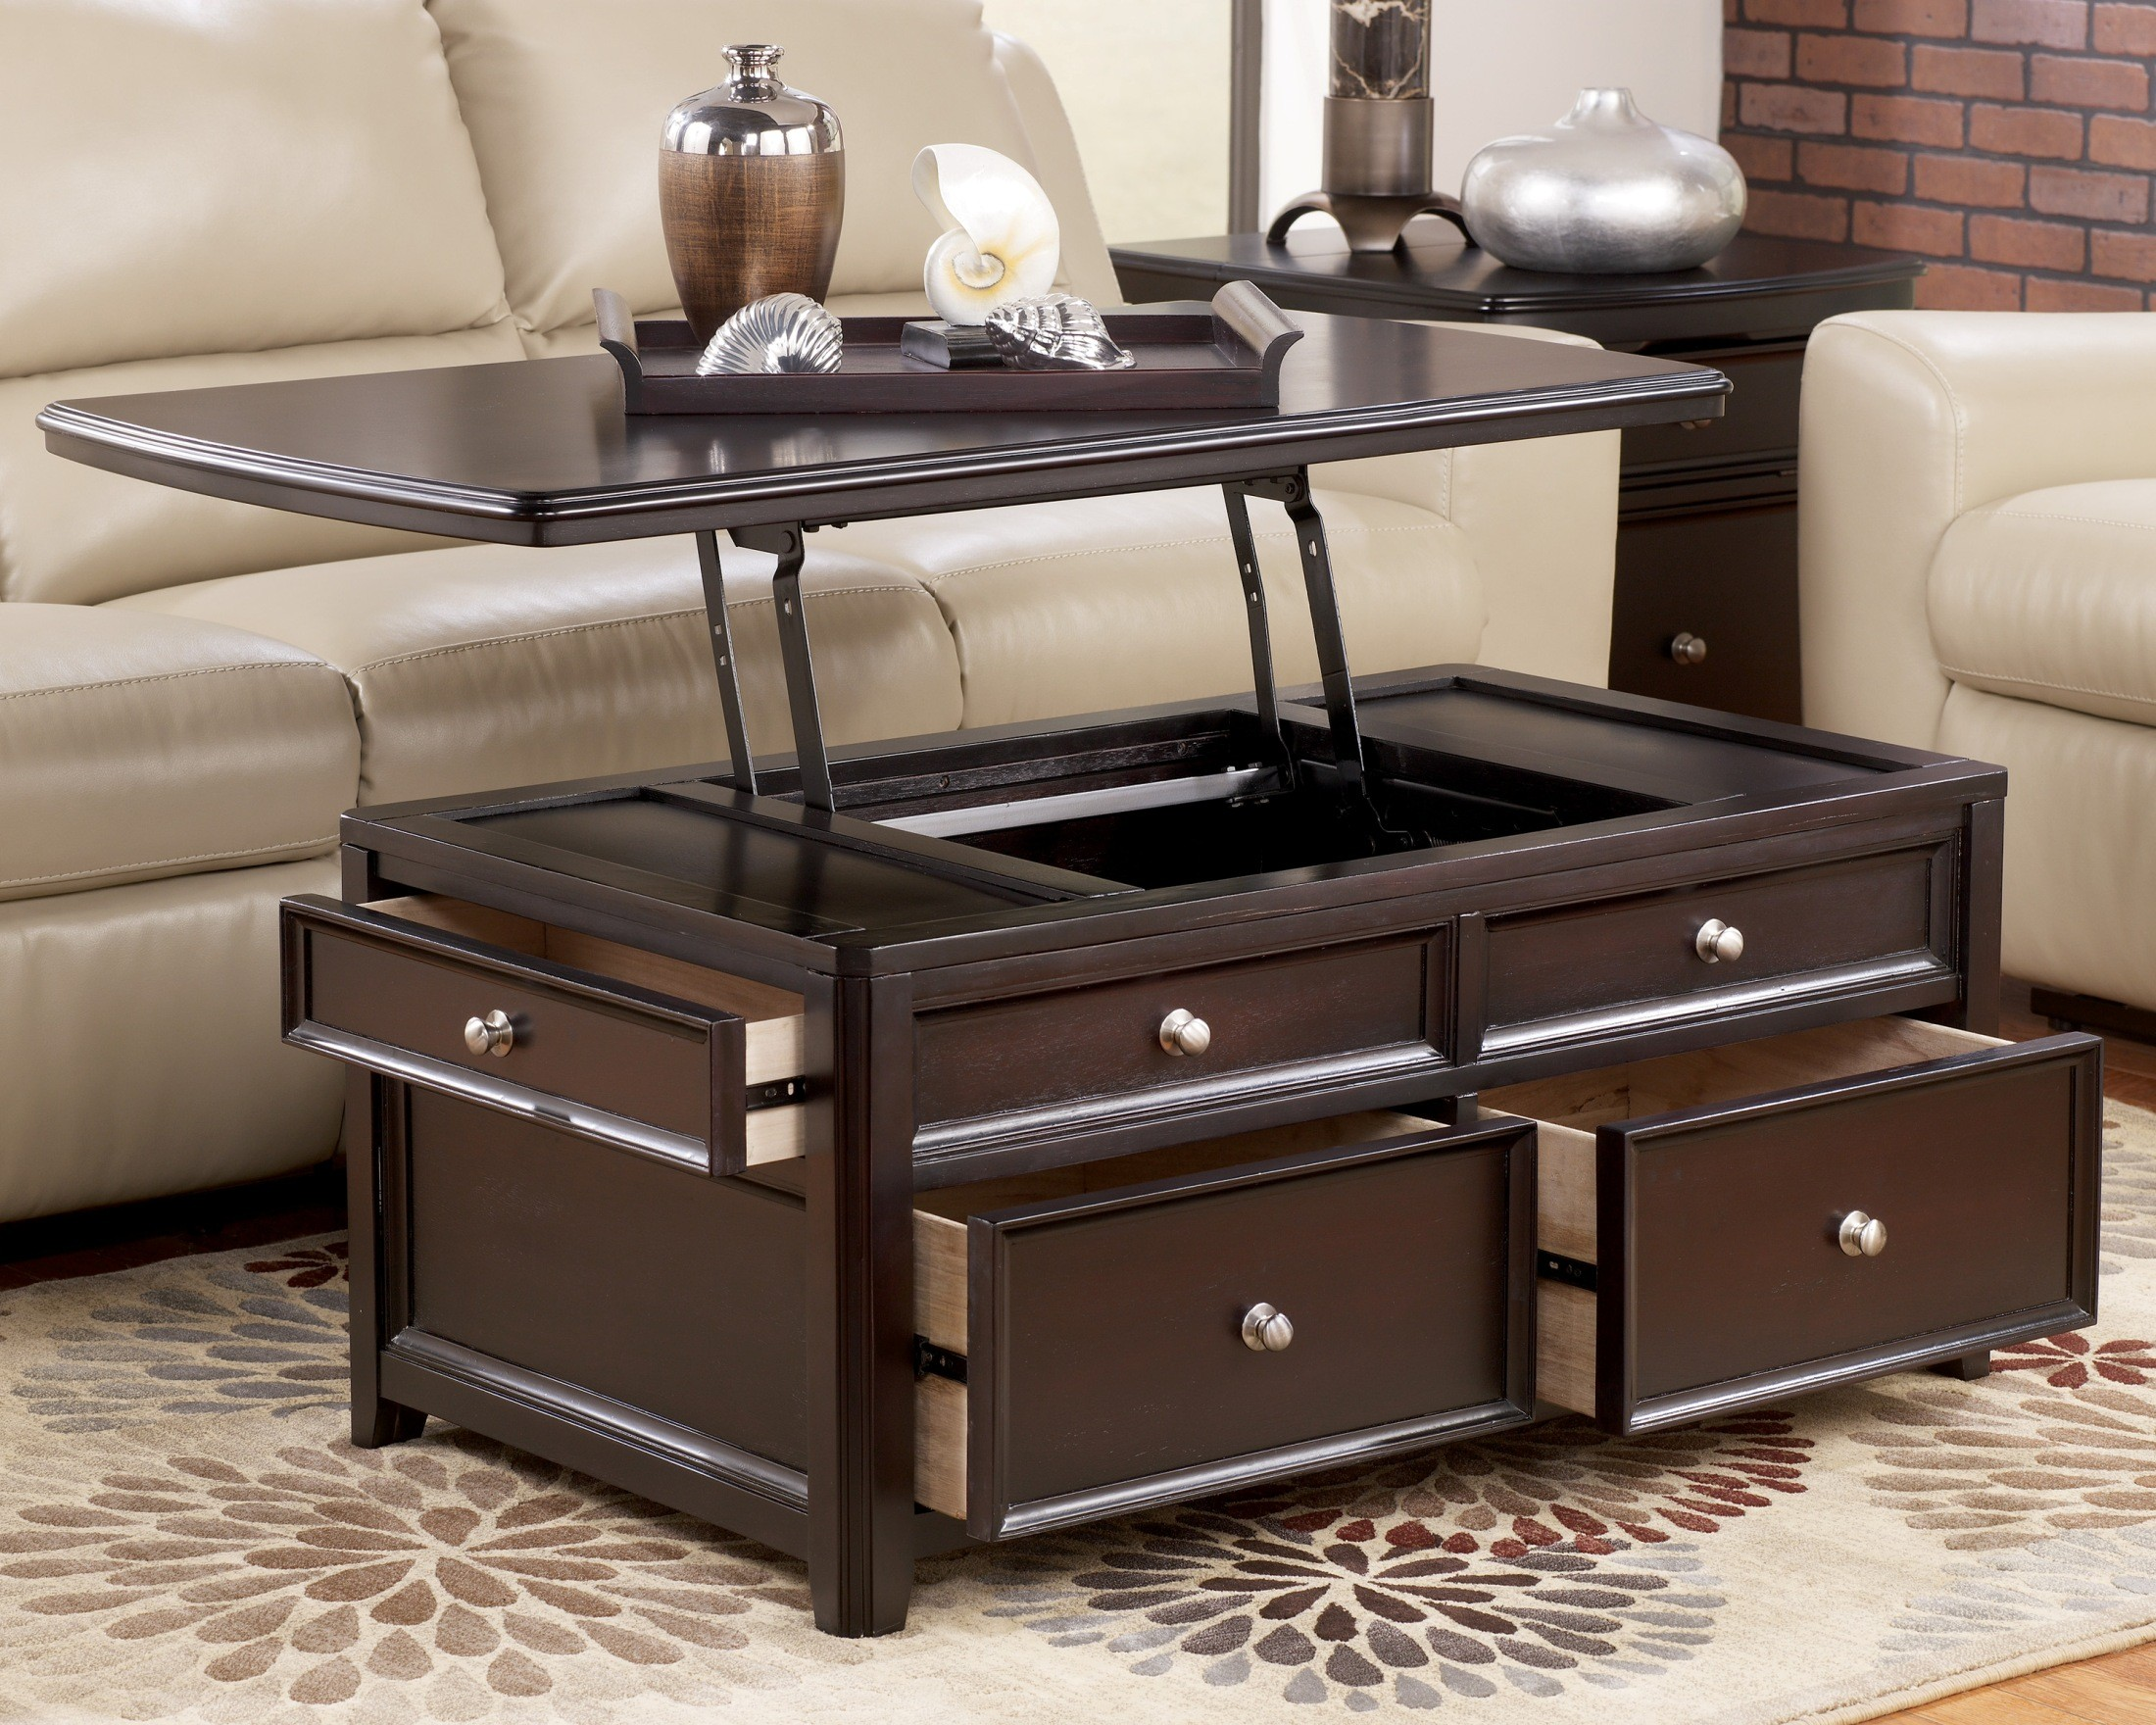 Carlyle Rectangular Lift Top Cocktail Table From Ashley T771 20 Coleman Furniture